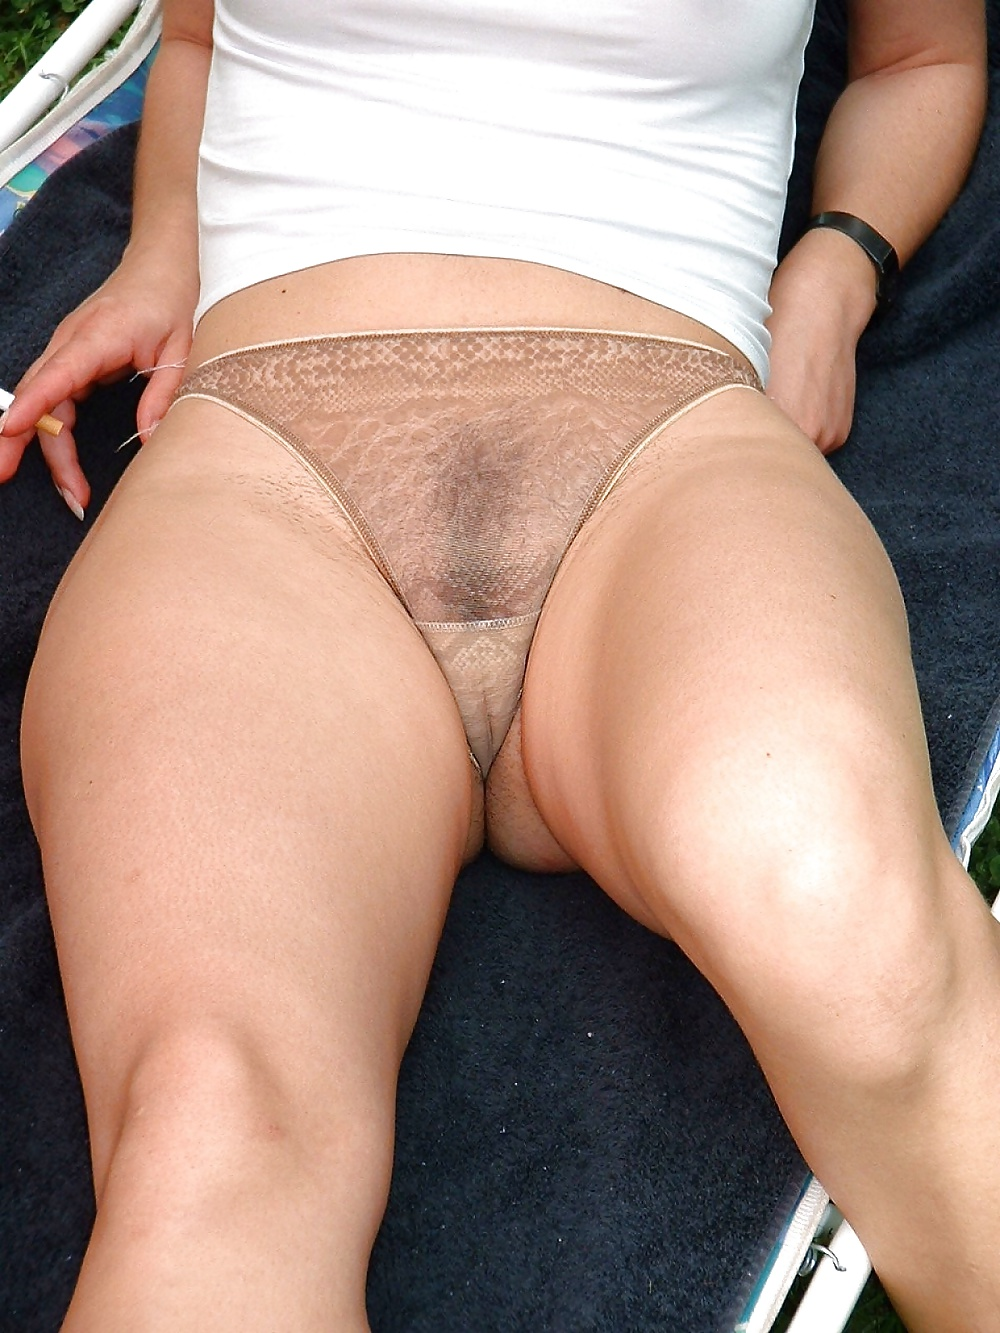 Cameltoe amature, erotic nde cheergals